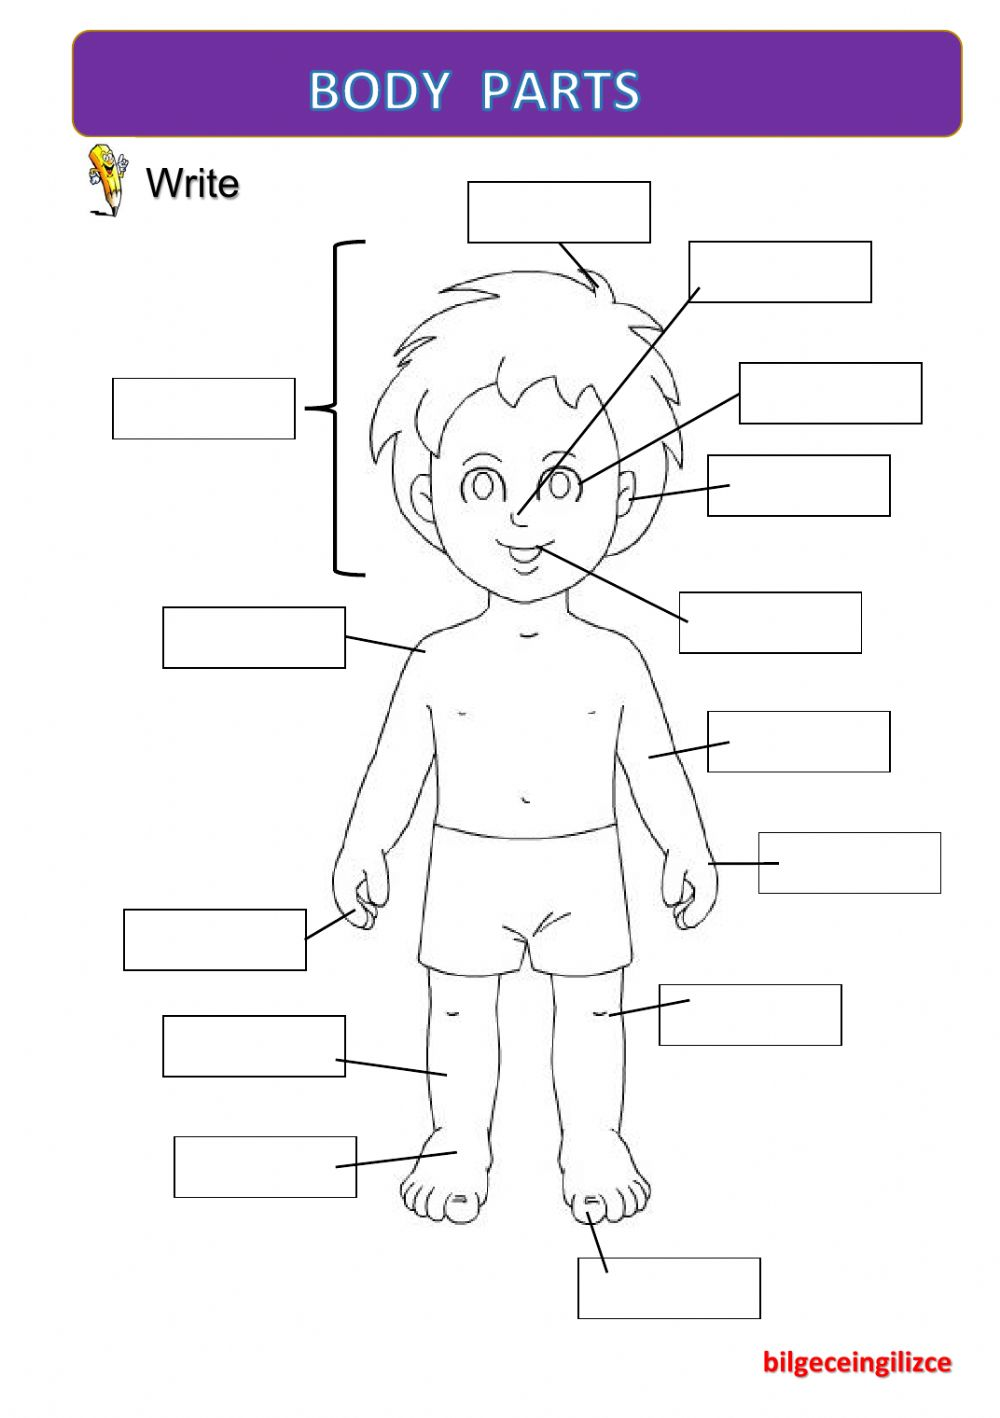 BODY PARTS(with video) worksheet